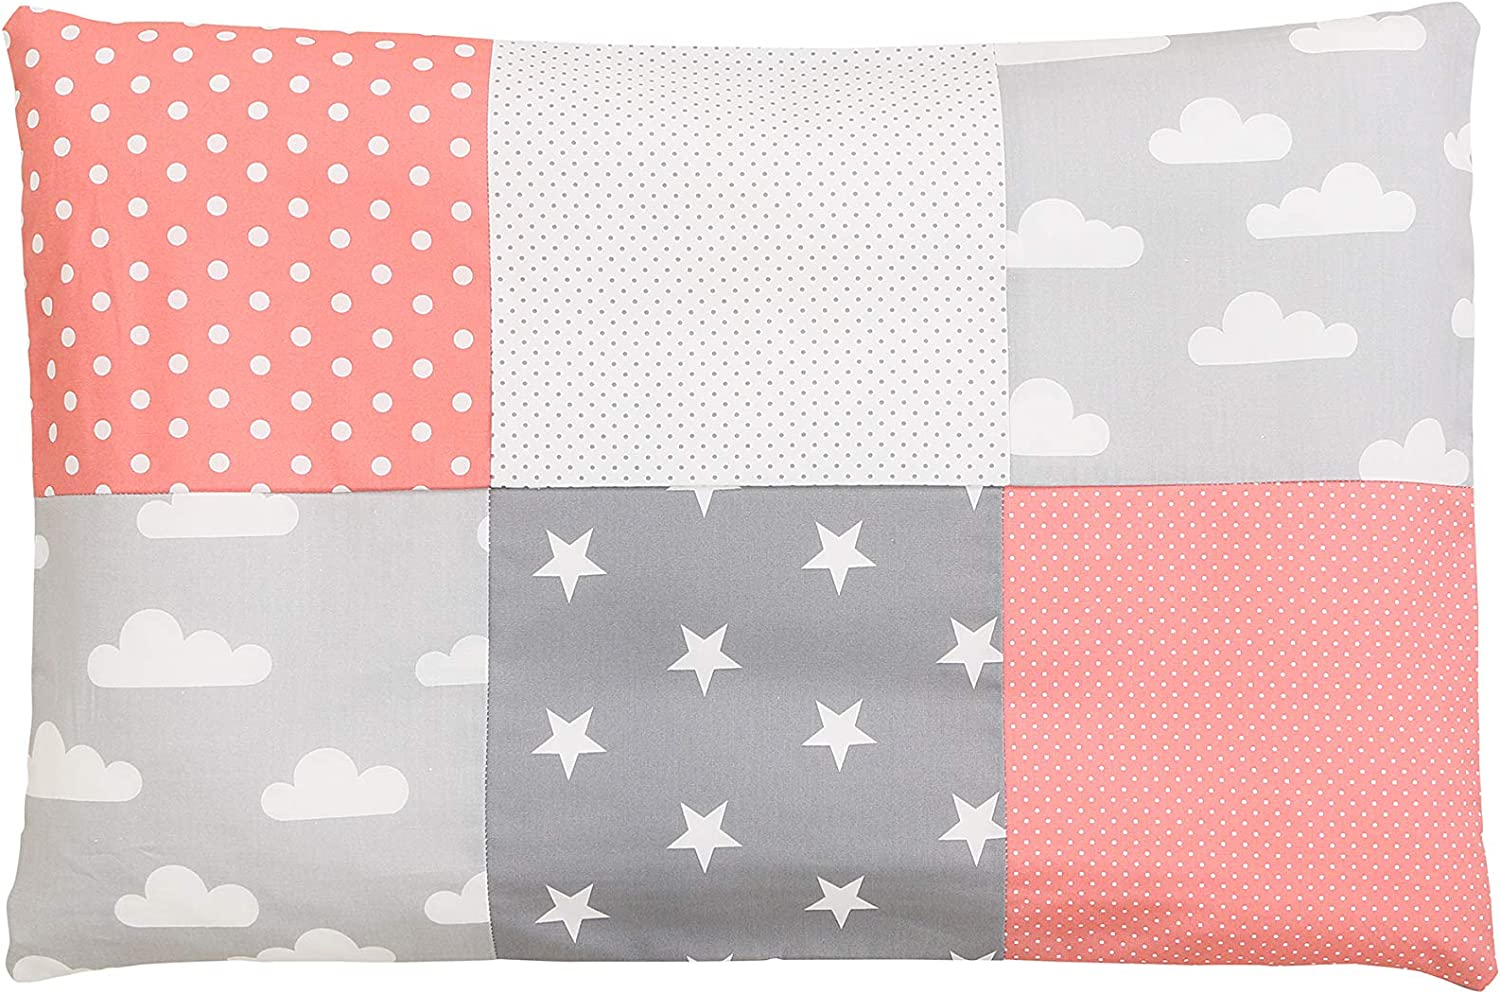 ULLENBOOM//® Baby Pillowcase Blue Light Blue Grey 40 x 60 cm with Zip, can Also be Used as a Decorative Cushion Cover; Motifs: Stars, Patchwork